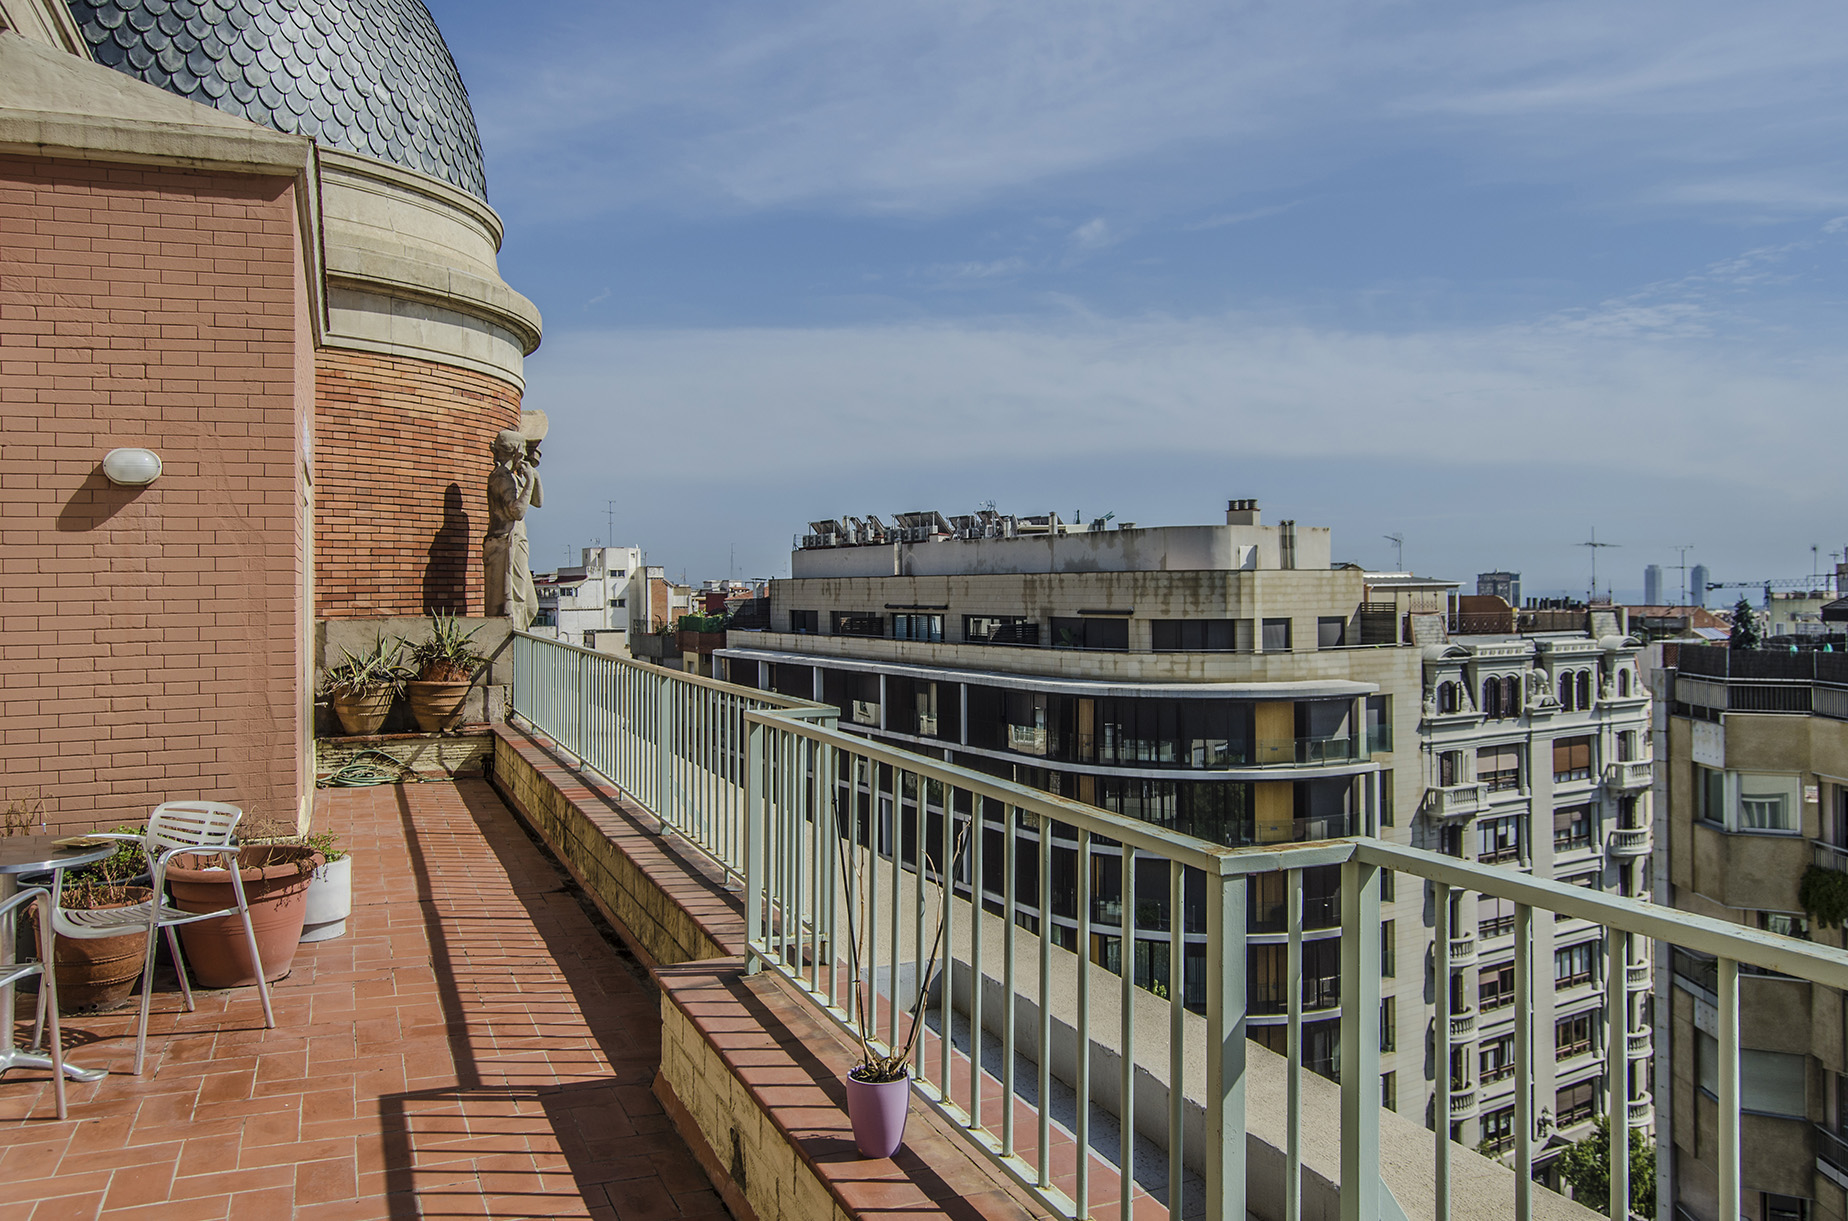 Apartamento para Venda às Impressive Duplex Penthouse with Terraces and Excellent Views Zona Alta, Barcelona City, Barcelona, 08034 Espanha